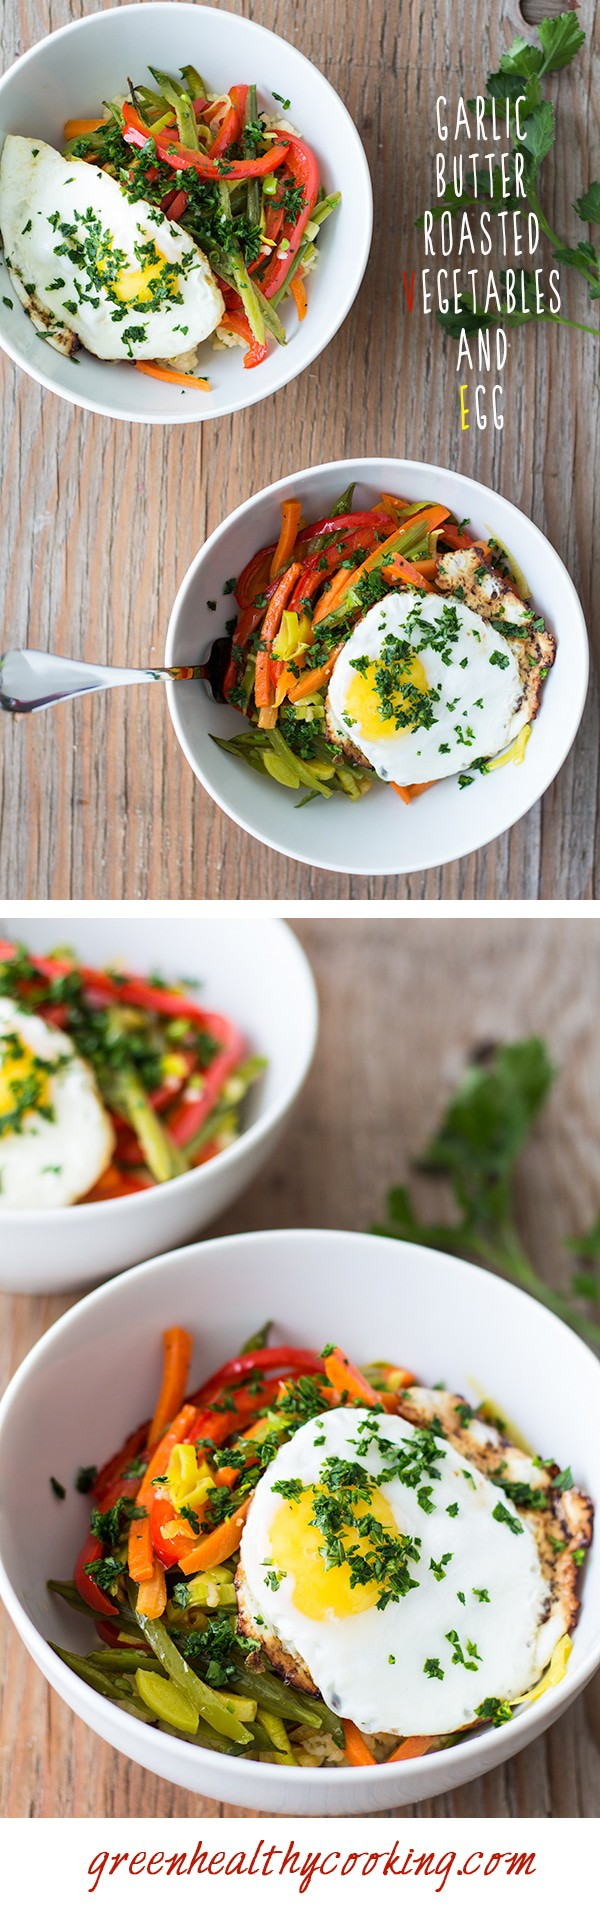 Collage of Garlic Butter Roasted Vegetables and Egg images with text overlay for Pinterest.